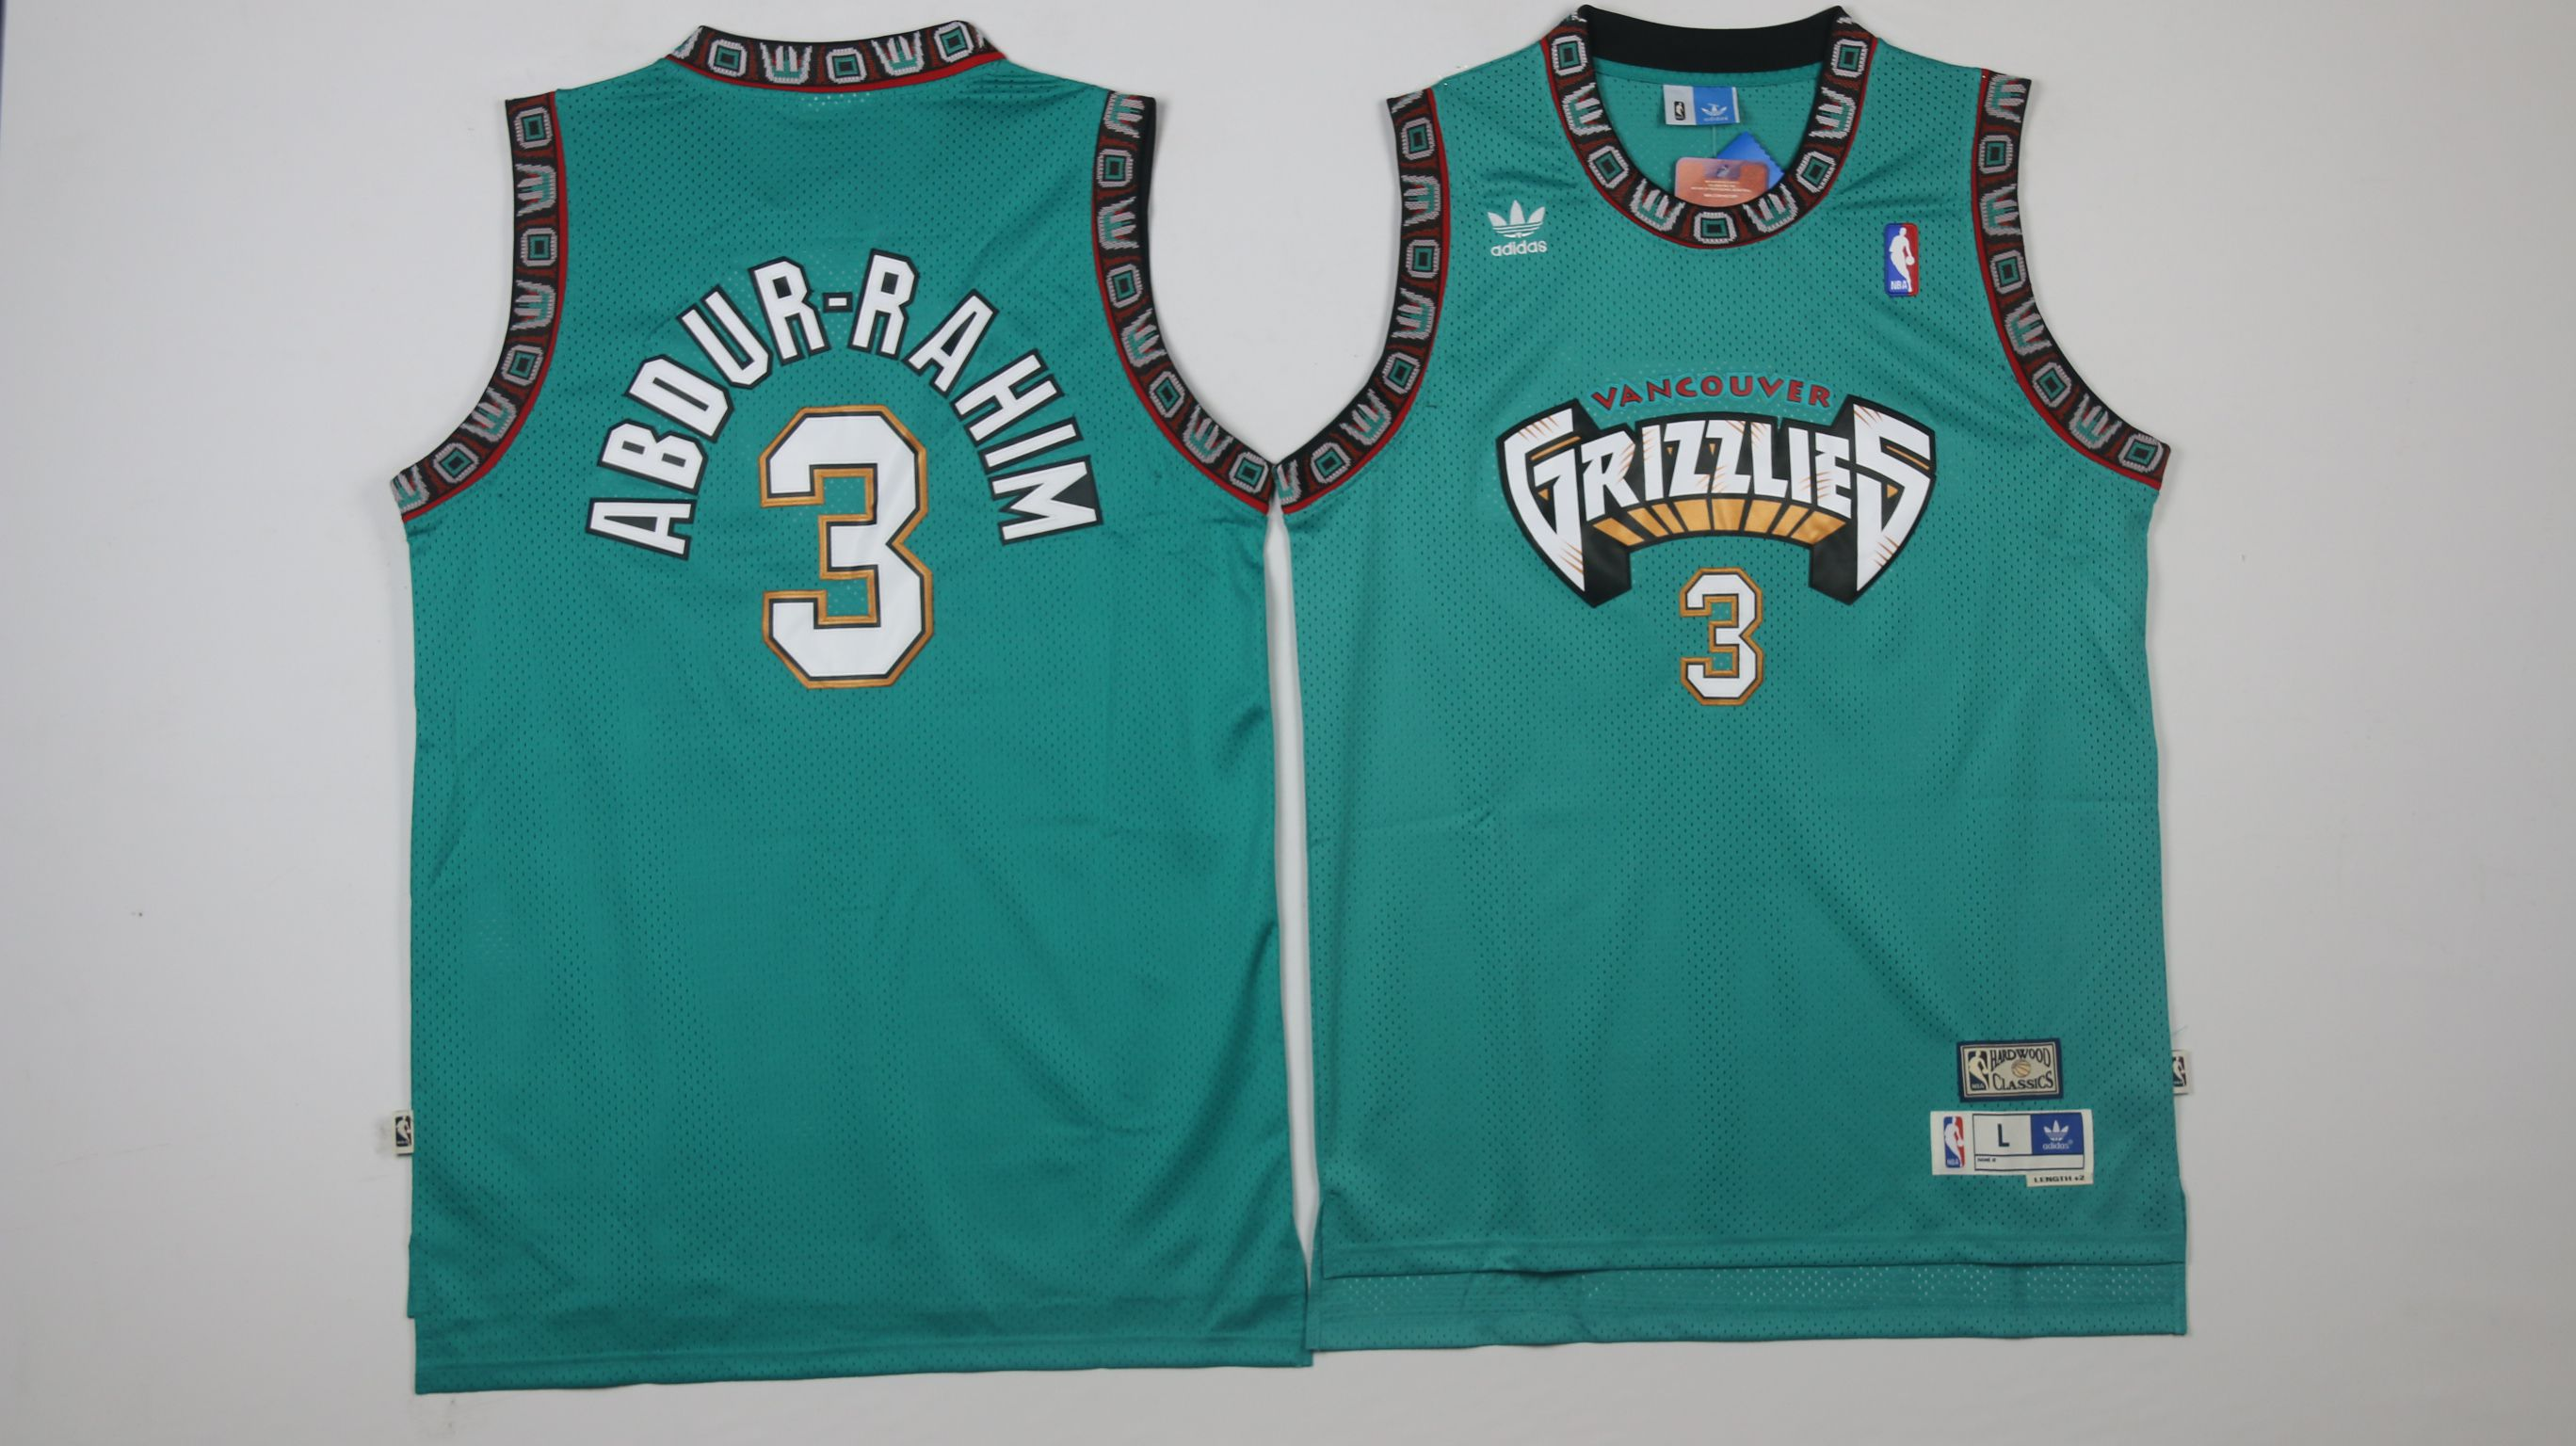 huge selection of 746eb 1c224 Cheap Grizzlies Jerseys,Supply Grizzlies Jerseys With ...